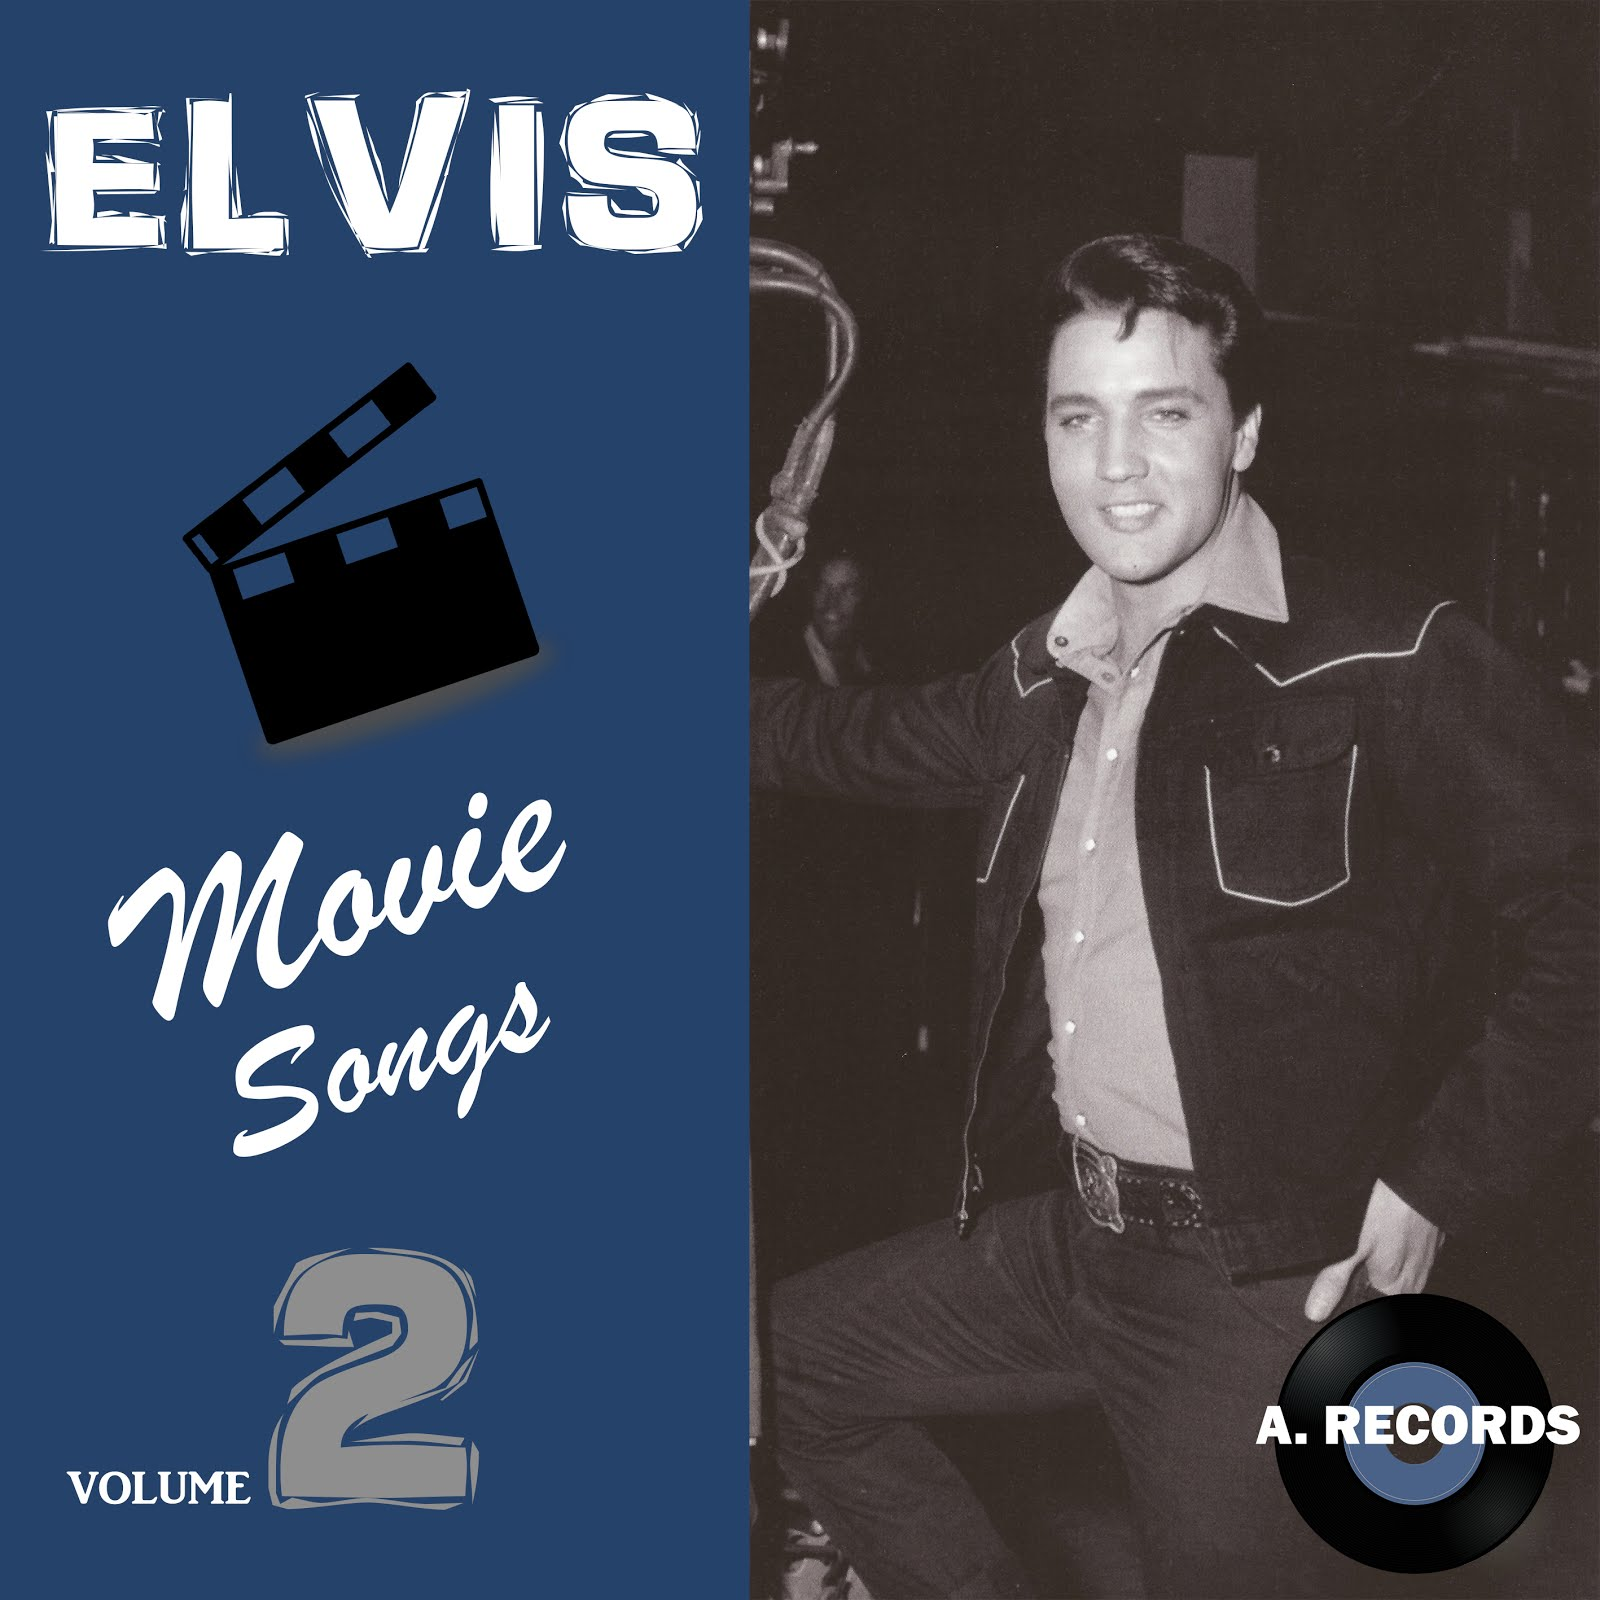 Elvis - Movie Songs - Volume 2 (June 2017)